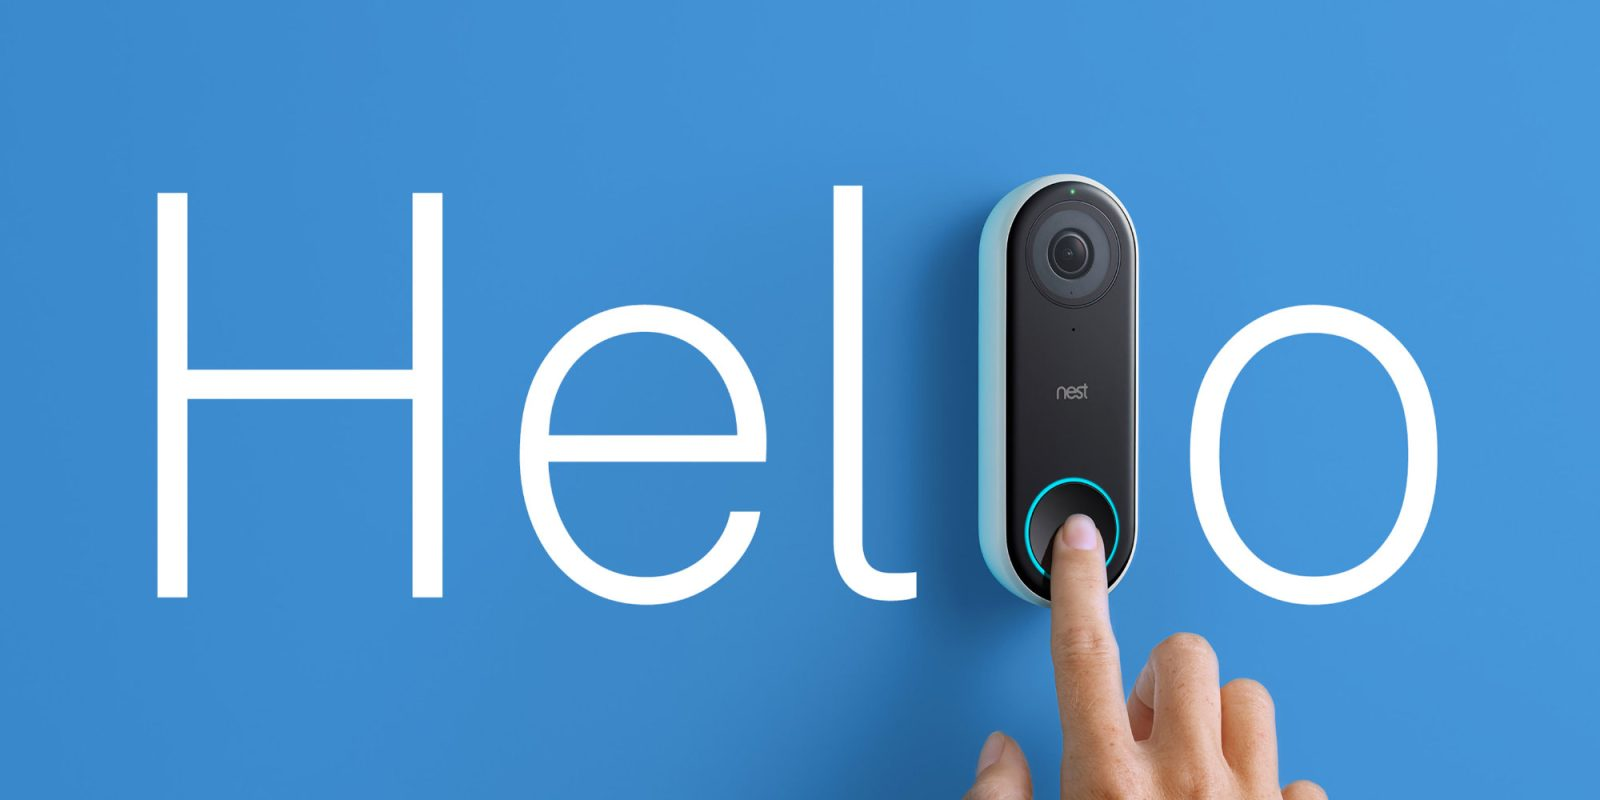 Sophisticate your door with Nest's Hello Video Doorbell: $164 (All-time low)